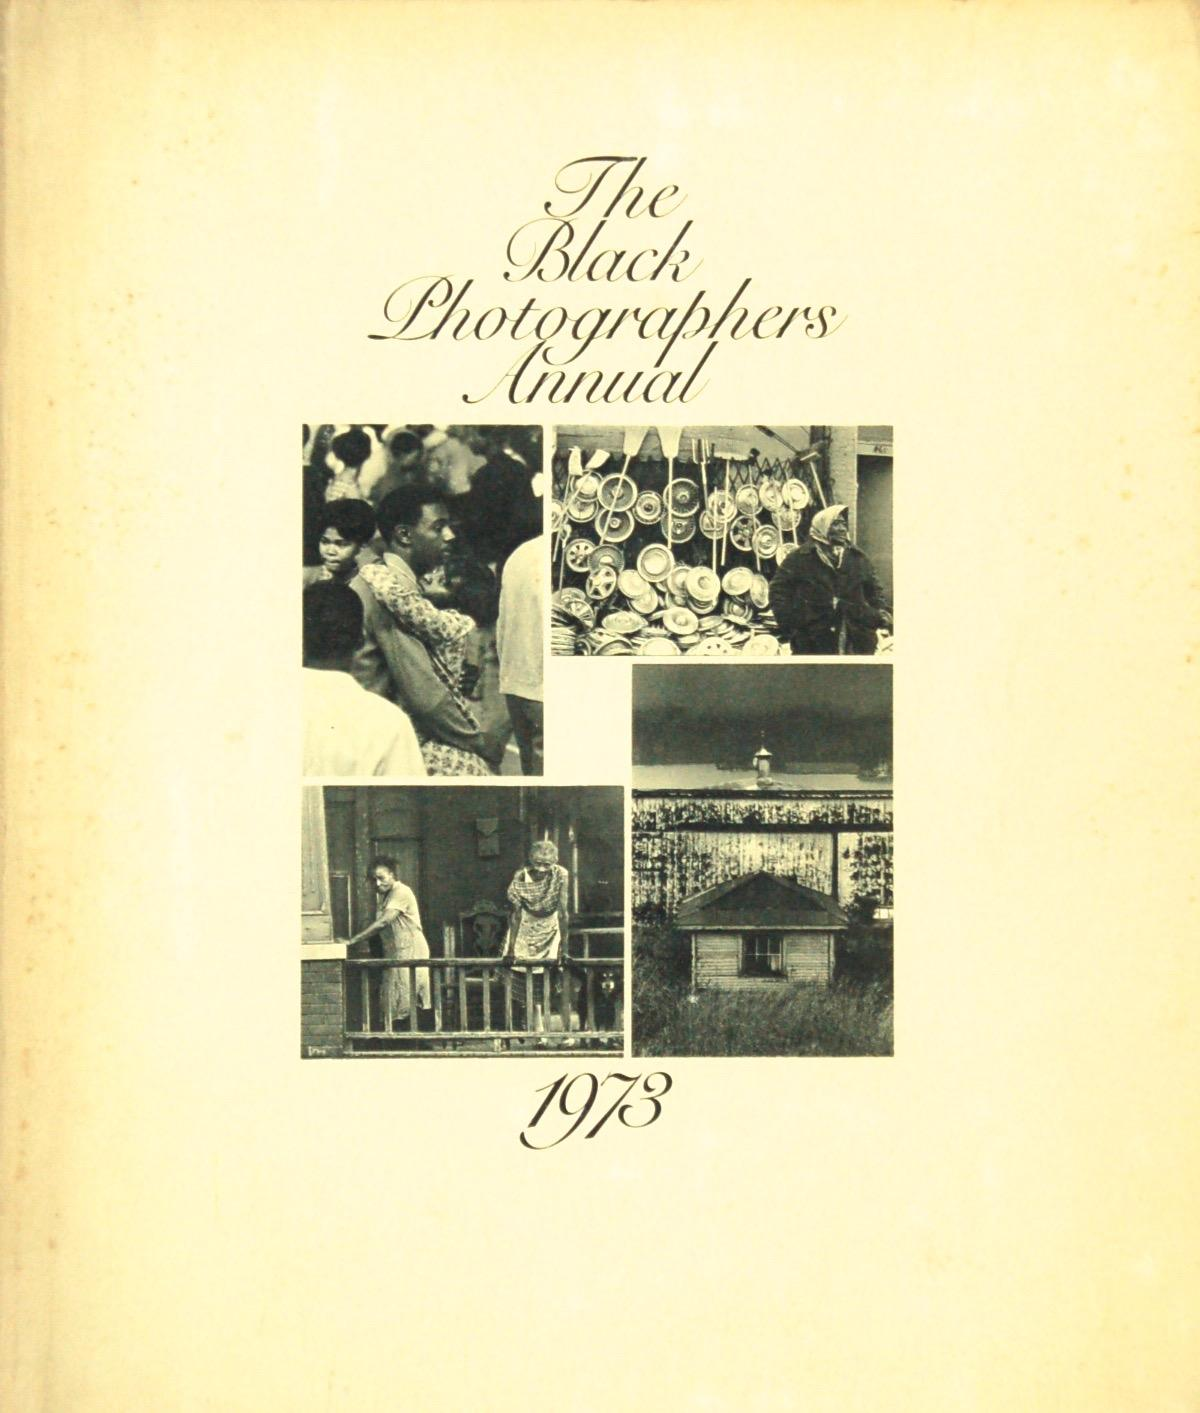 Click for a larger image of The Black Photographers Annual 1973